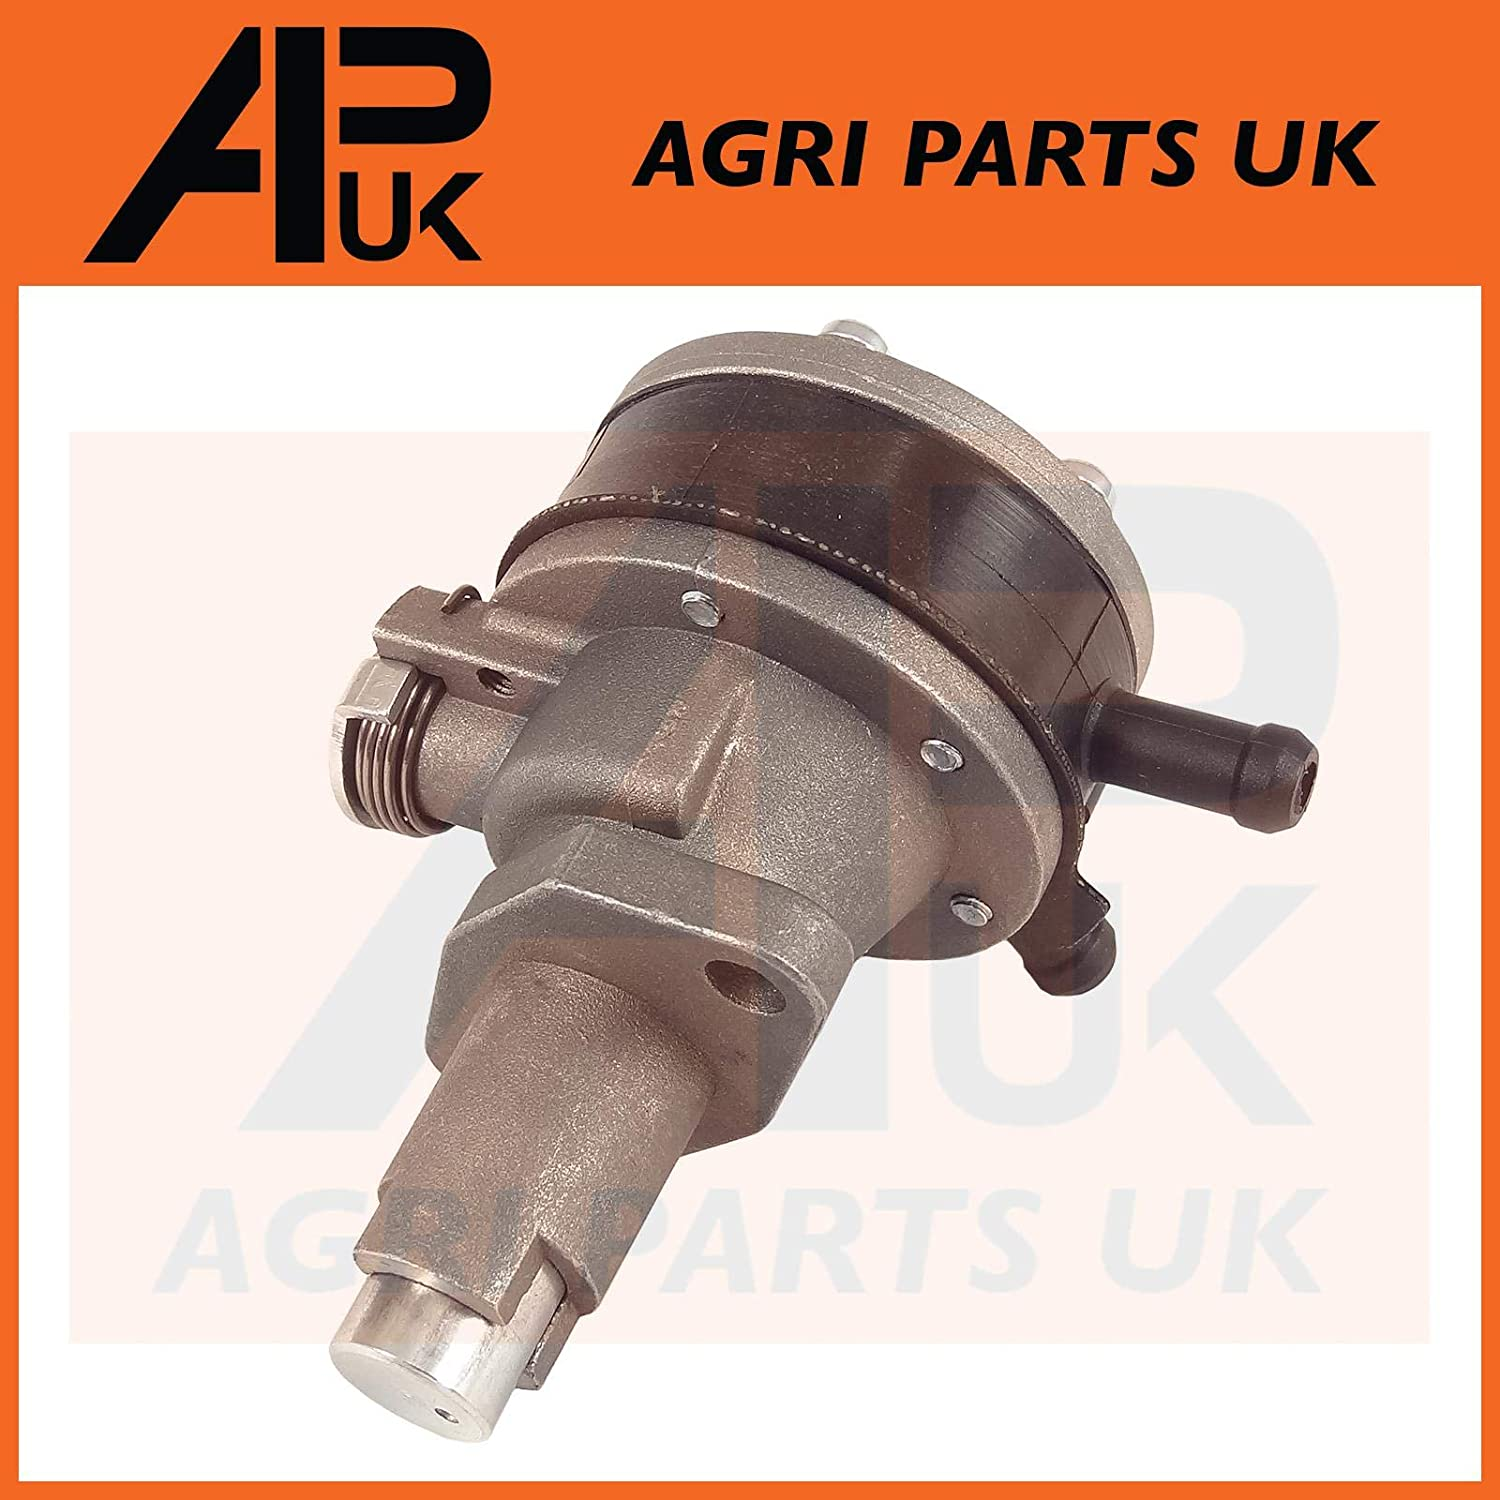 APUK Fuel lift pump with Primer compatible with Kubota D750 D850 D950 D950-B Industrial Diesel Engine